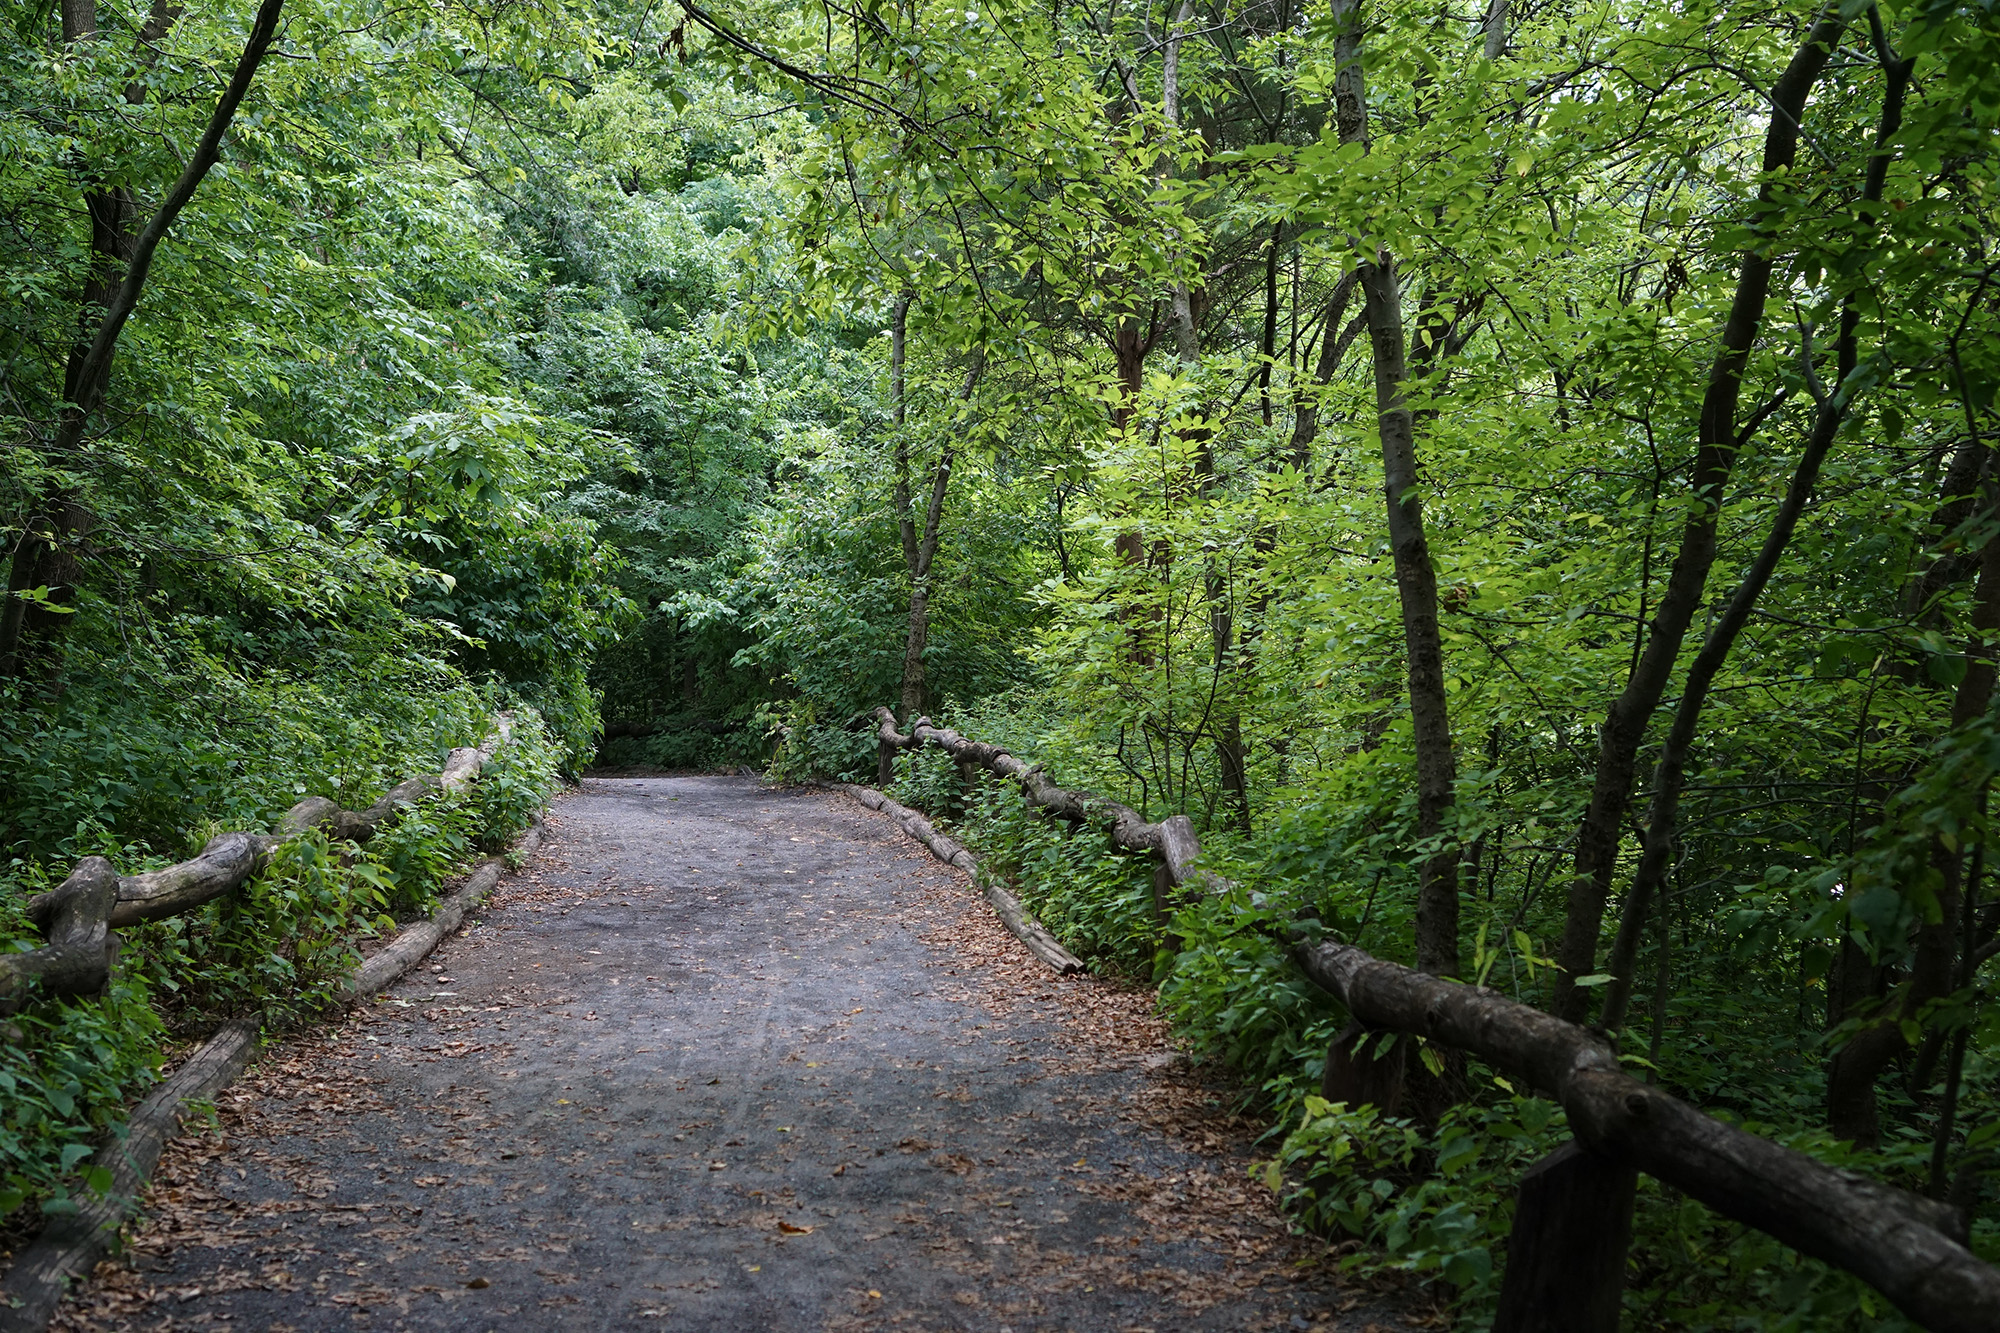 The Ramble, Central Park, New York City / Darker than Green